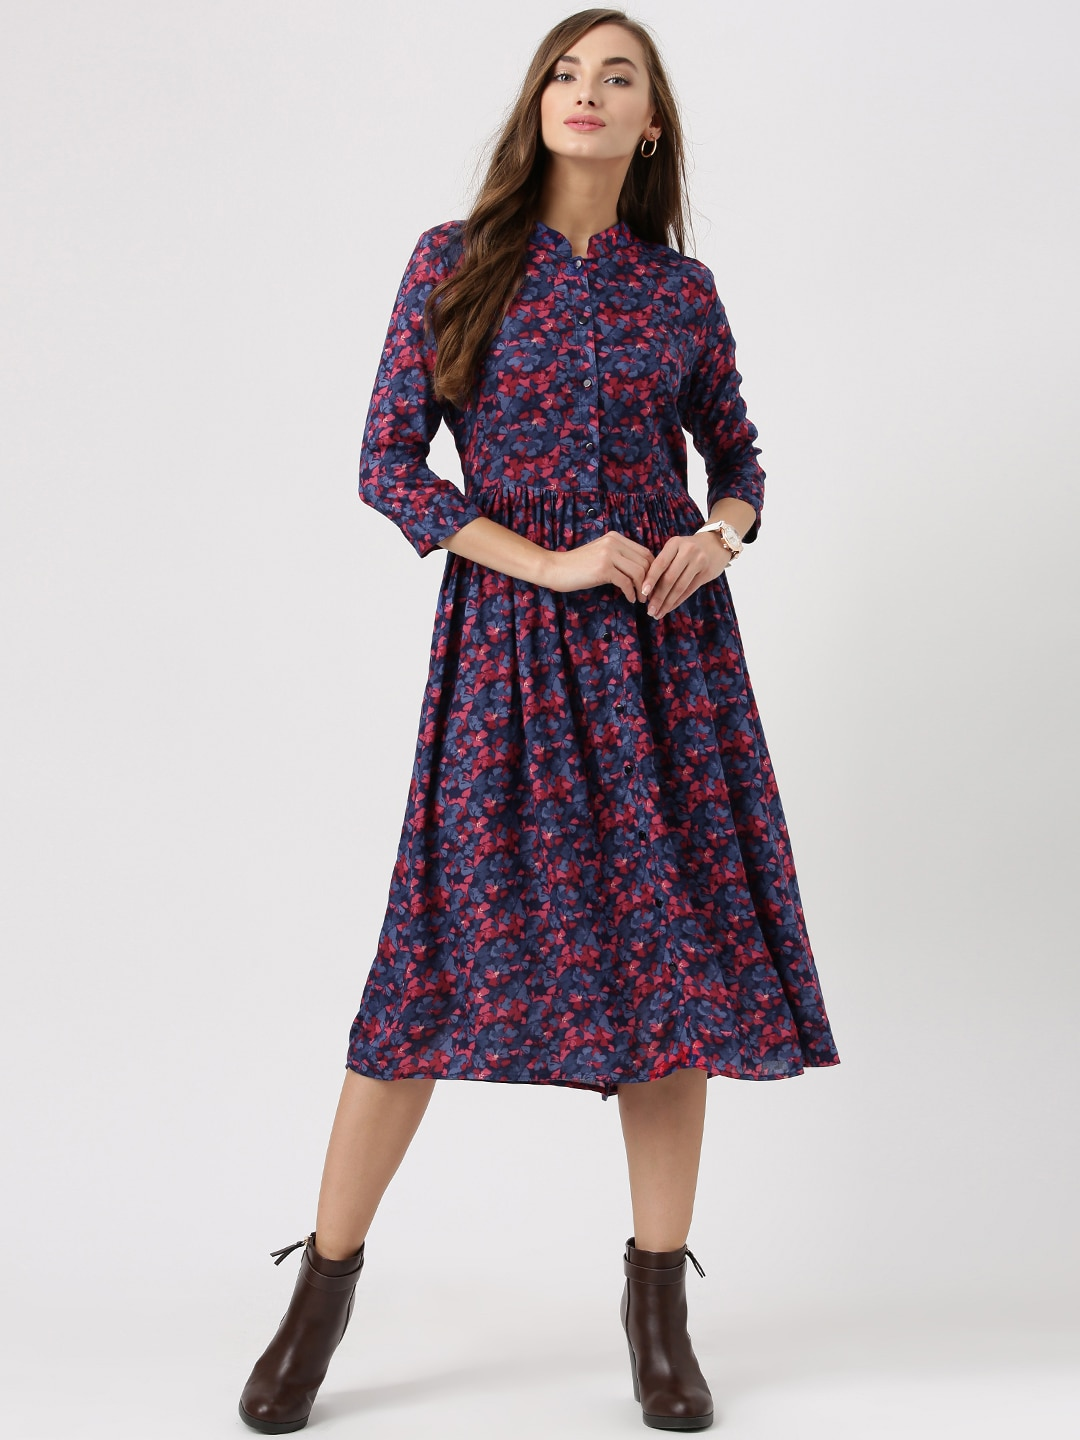 a1417d905c76 Midi Dresses - Buy Midi Dress for Women   Girl Online